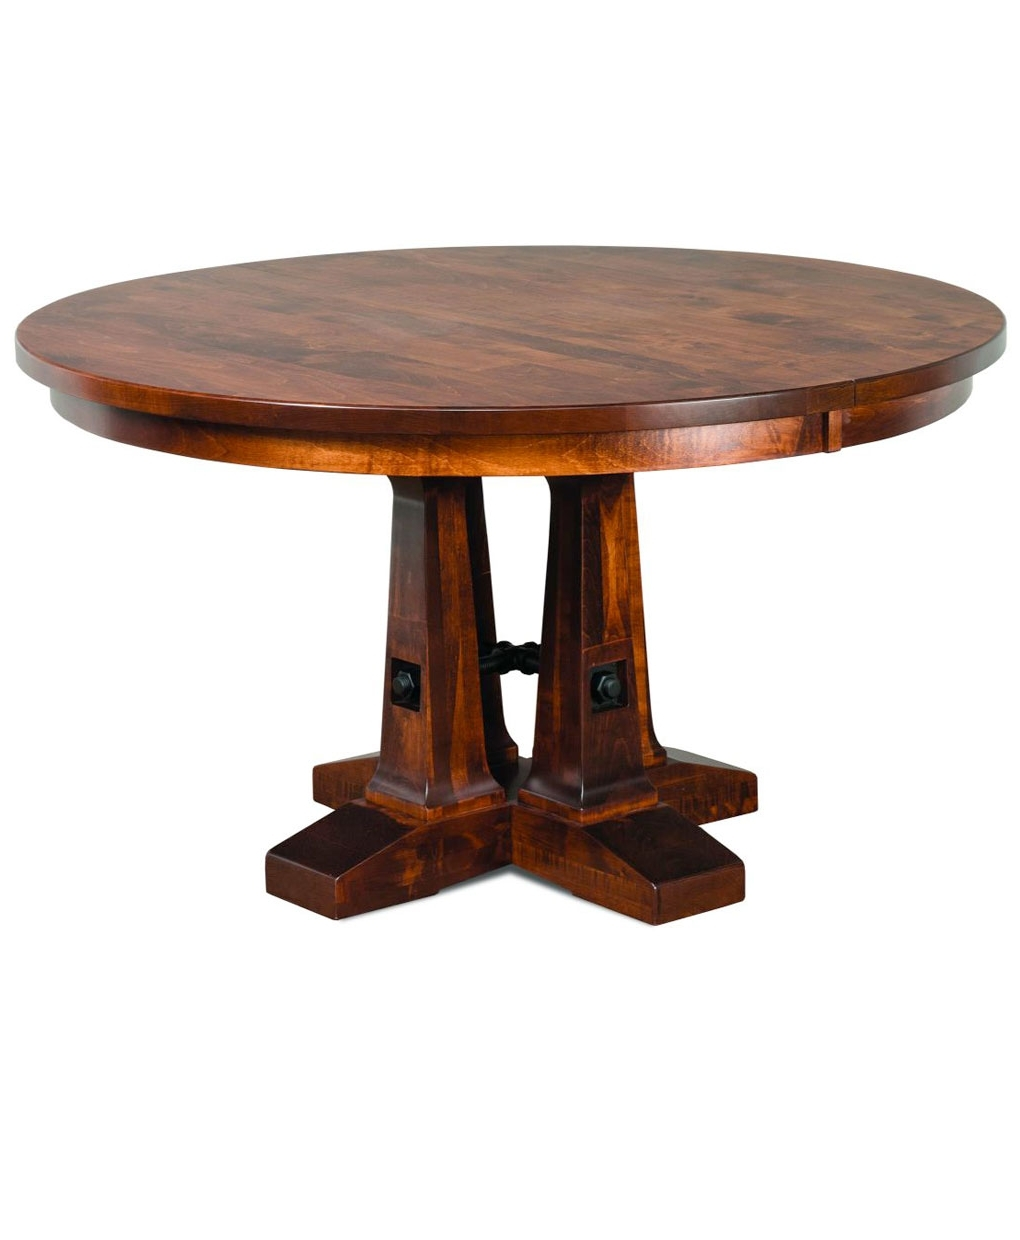 Vienna Round Dining Table – Amish Direct Furniture With Regard To Well Known Vienna Dining Tables (View 12 of 25)